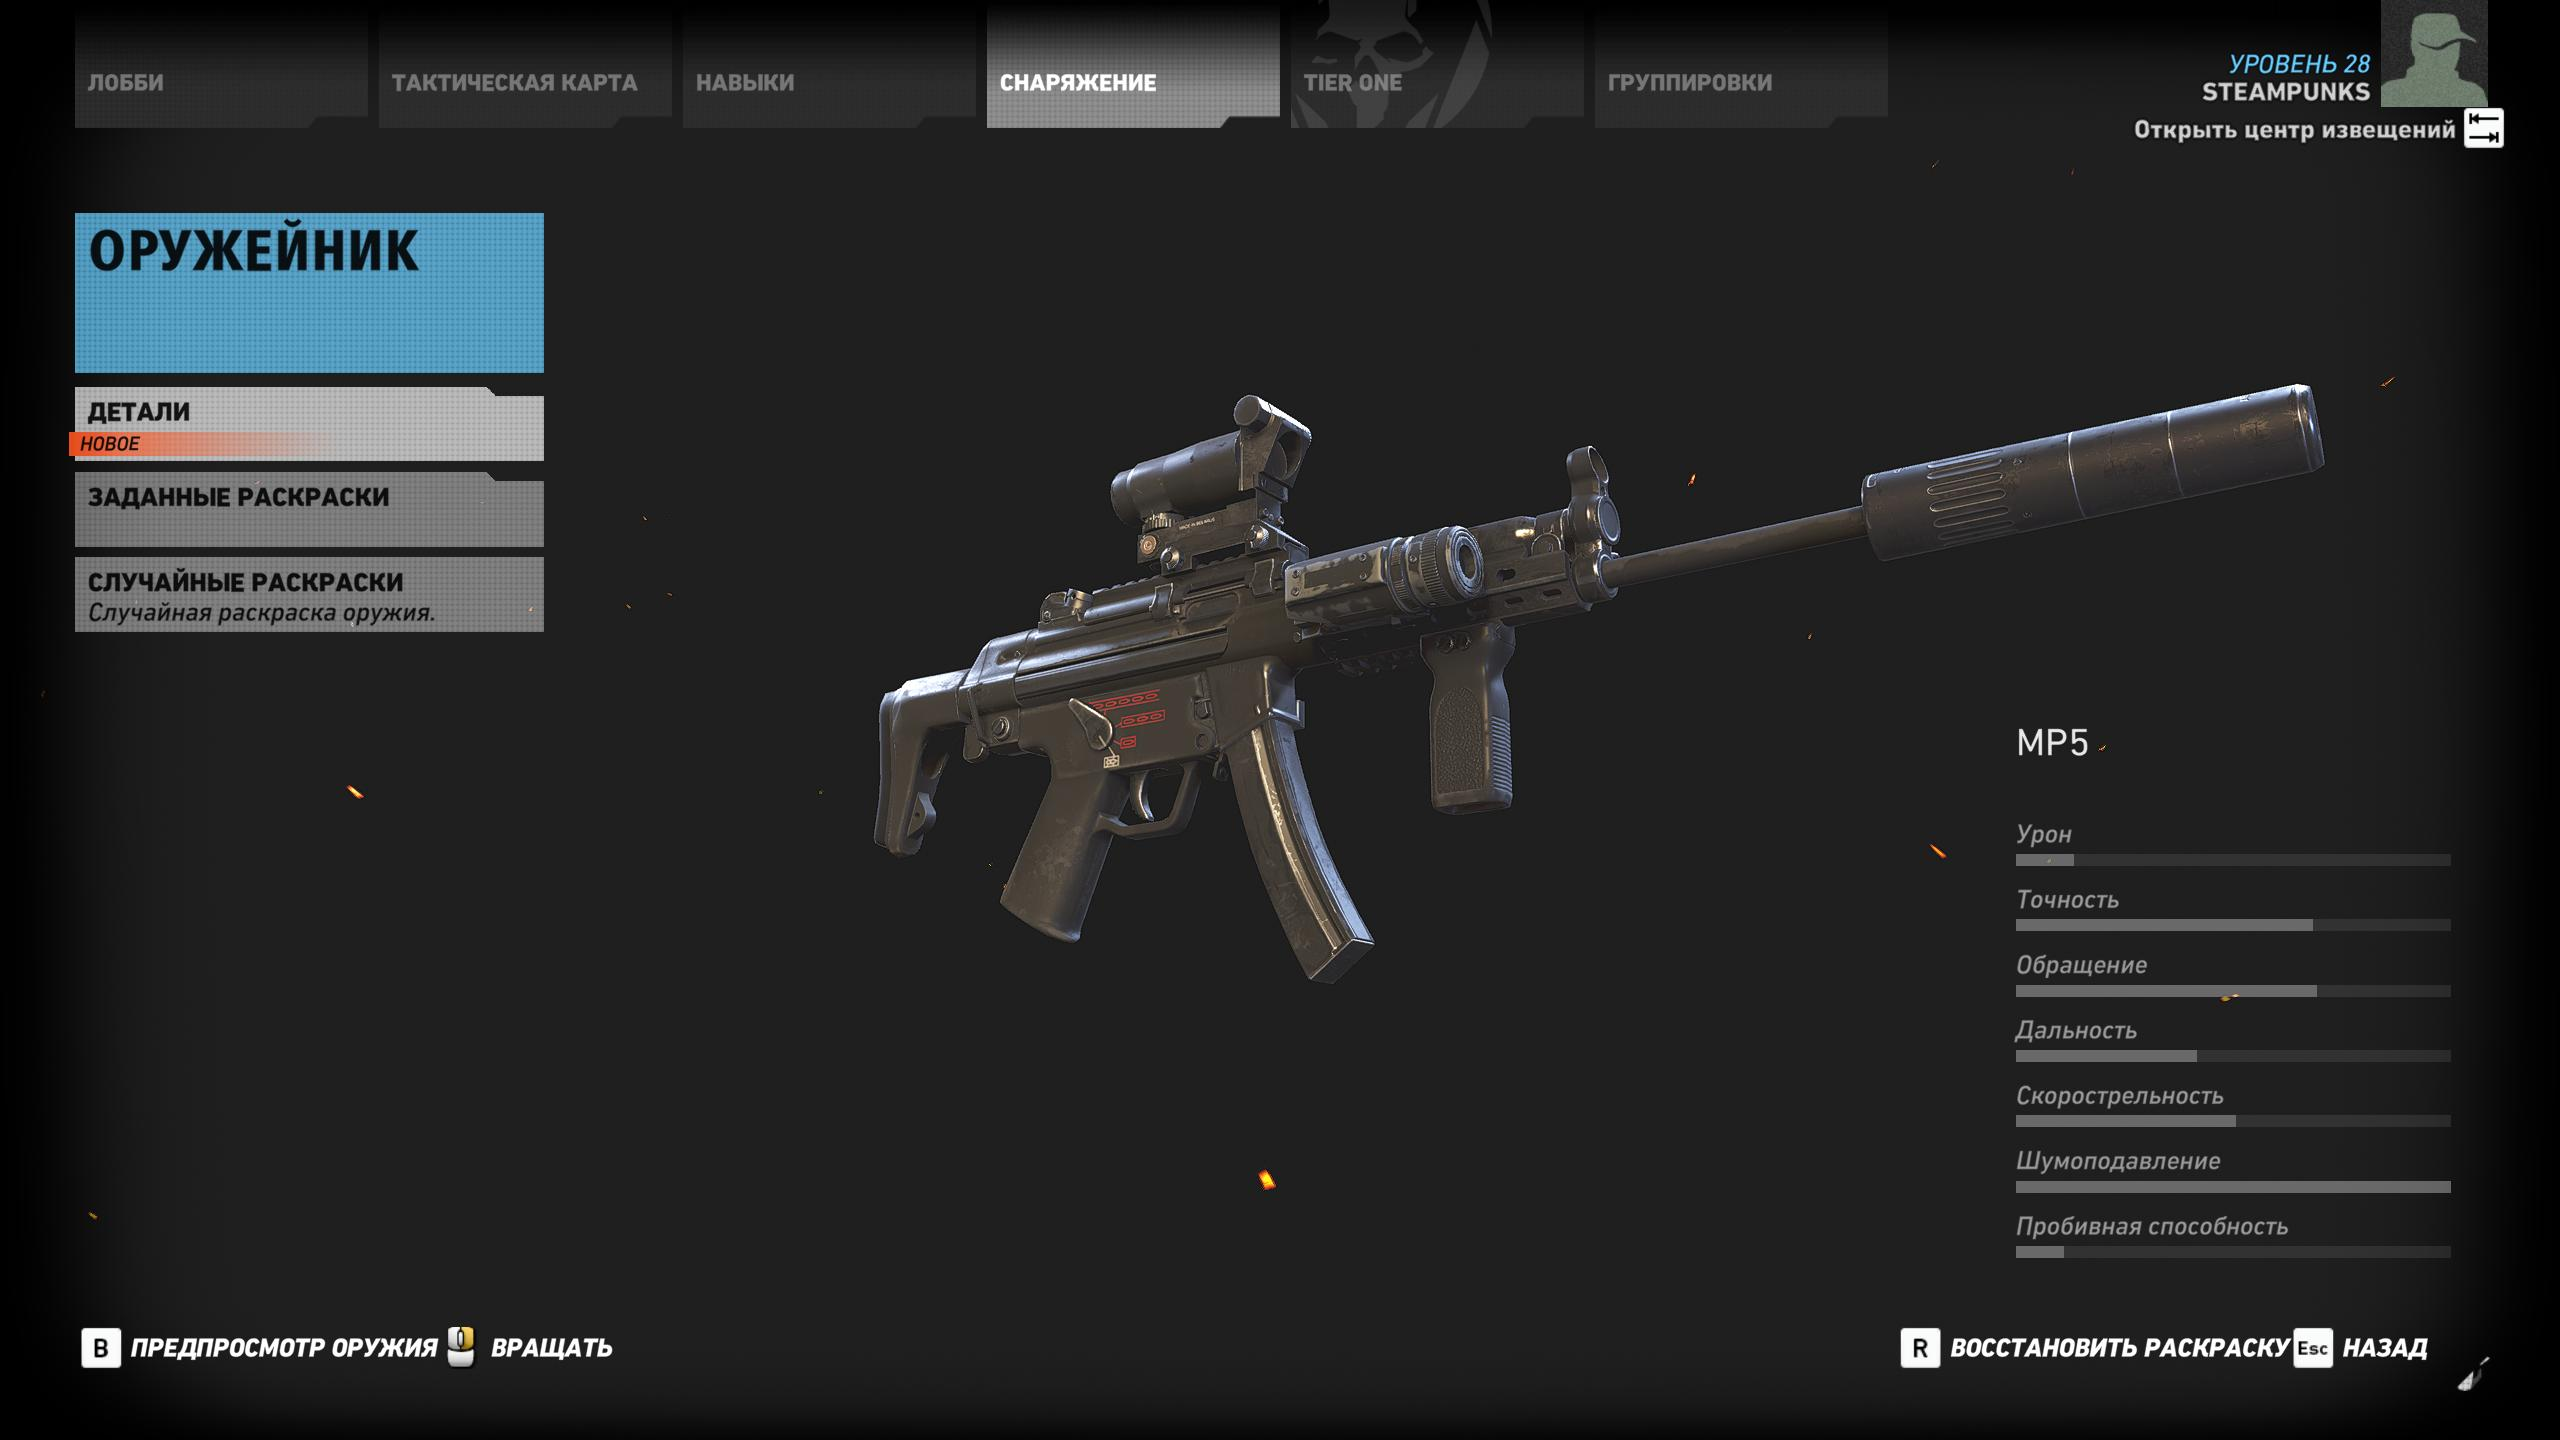 MP5 - Tom Clancy's Ghost Recon: Wildlands Оружие